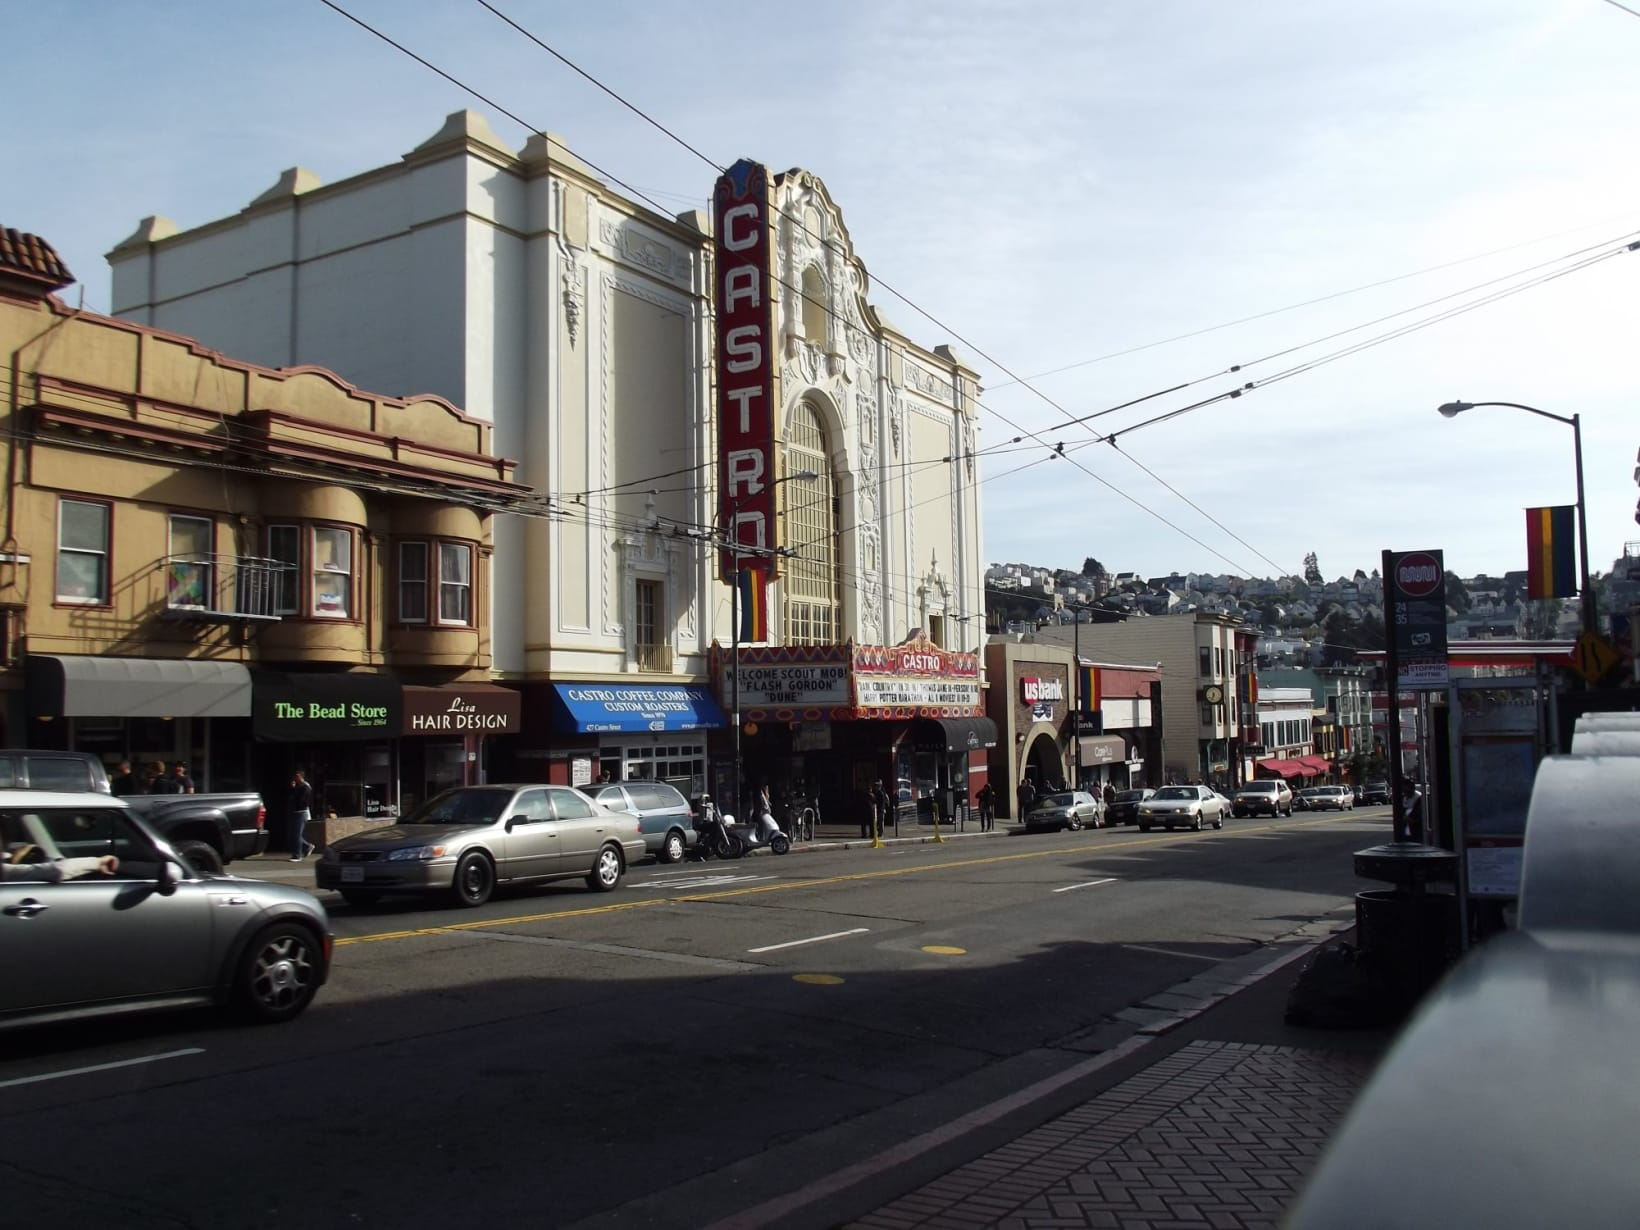 Photograph of the Castro Cinema taken from across the street. Cars are driving down the street past the cinema and other storefronts, including a bread store and a hairdressers.